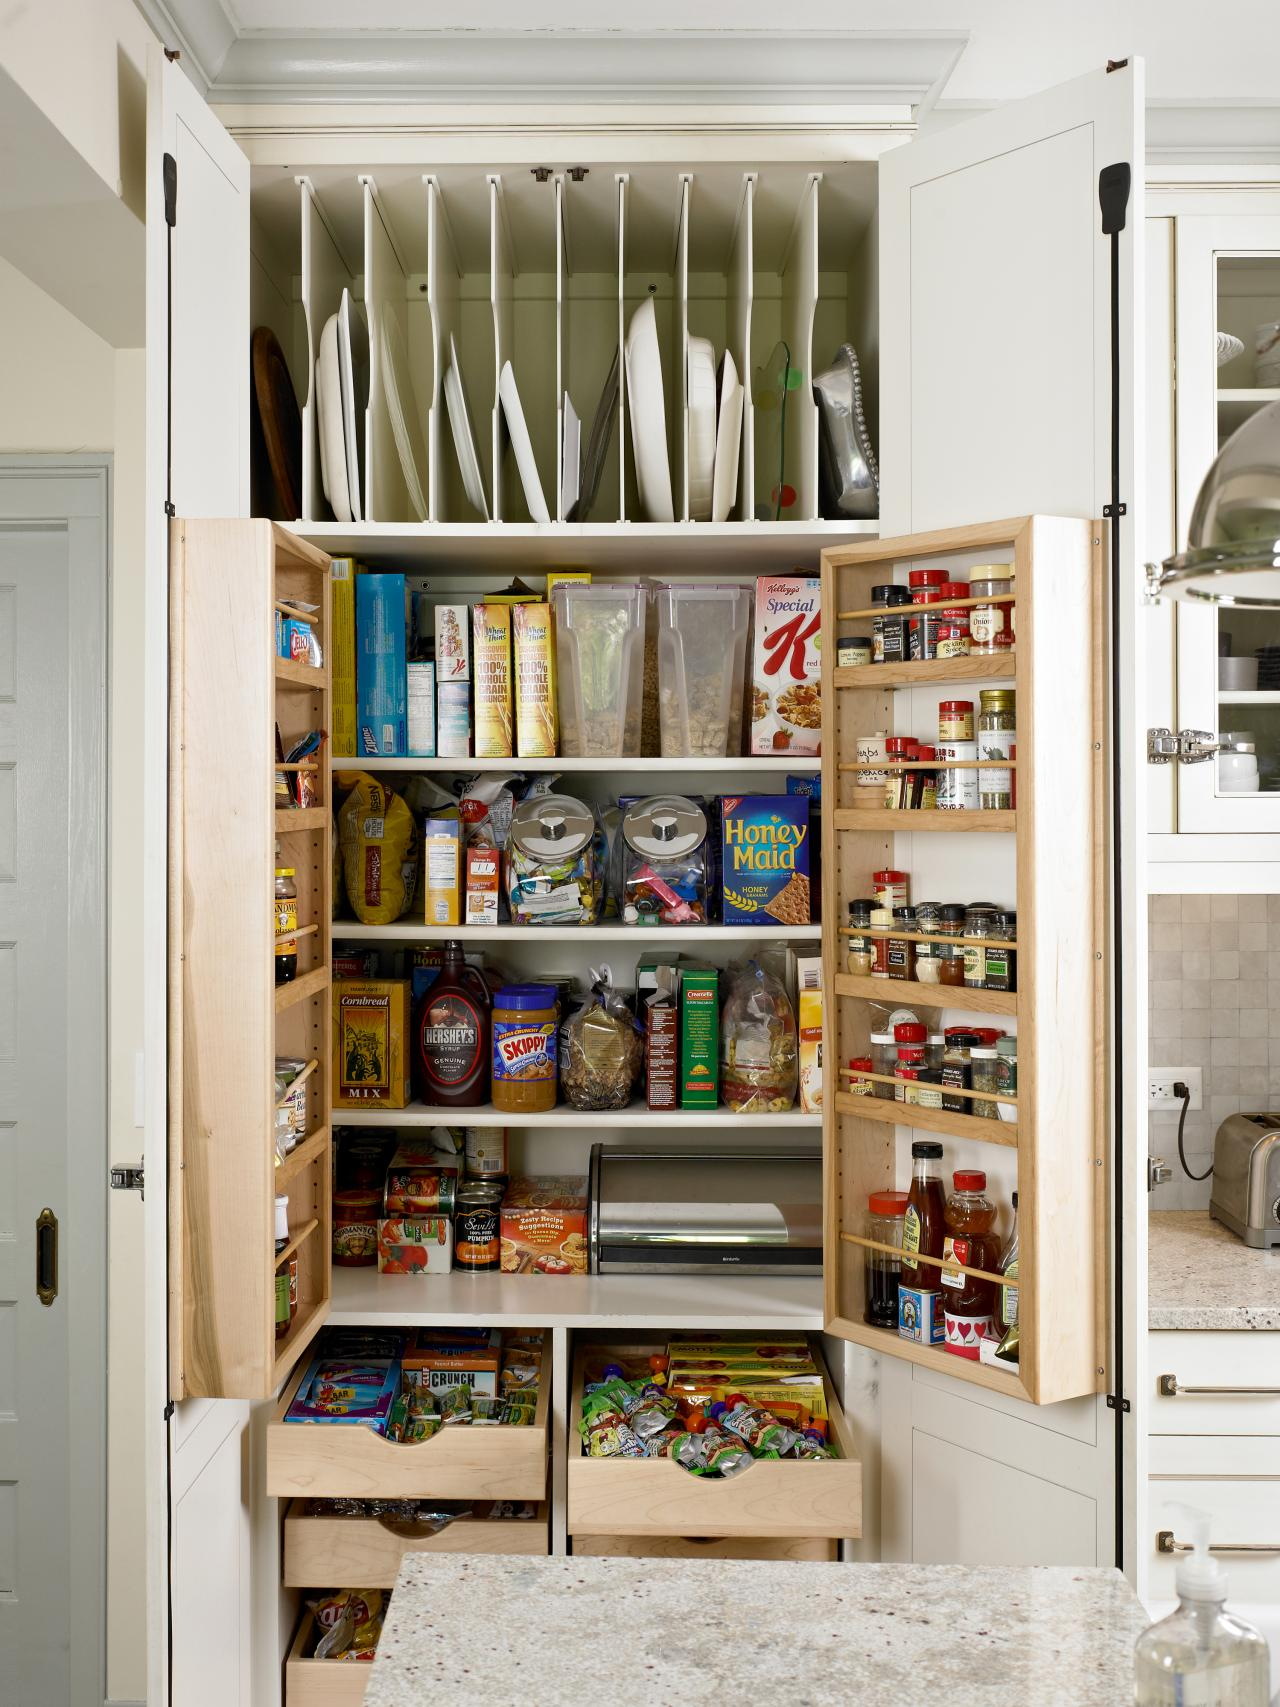 small kitchen storage ideas - Storage Ideas For A Small Kitchen